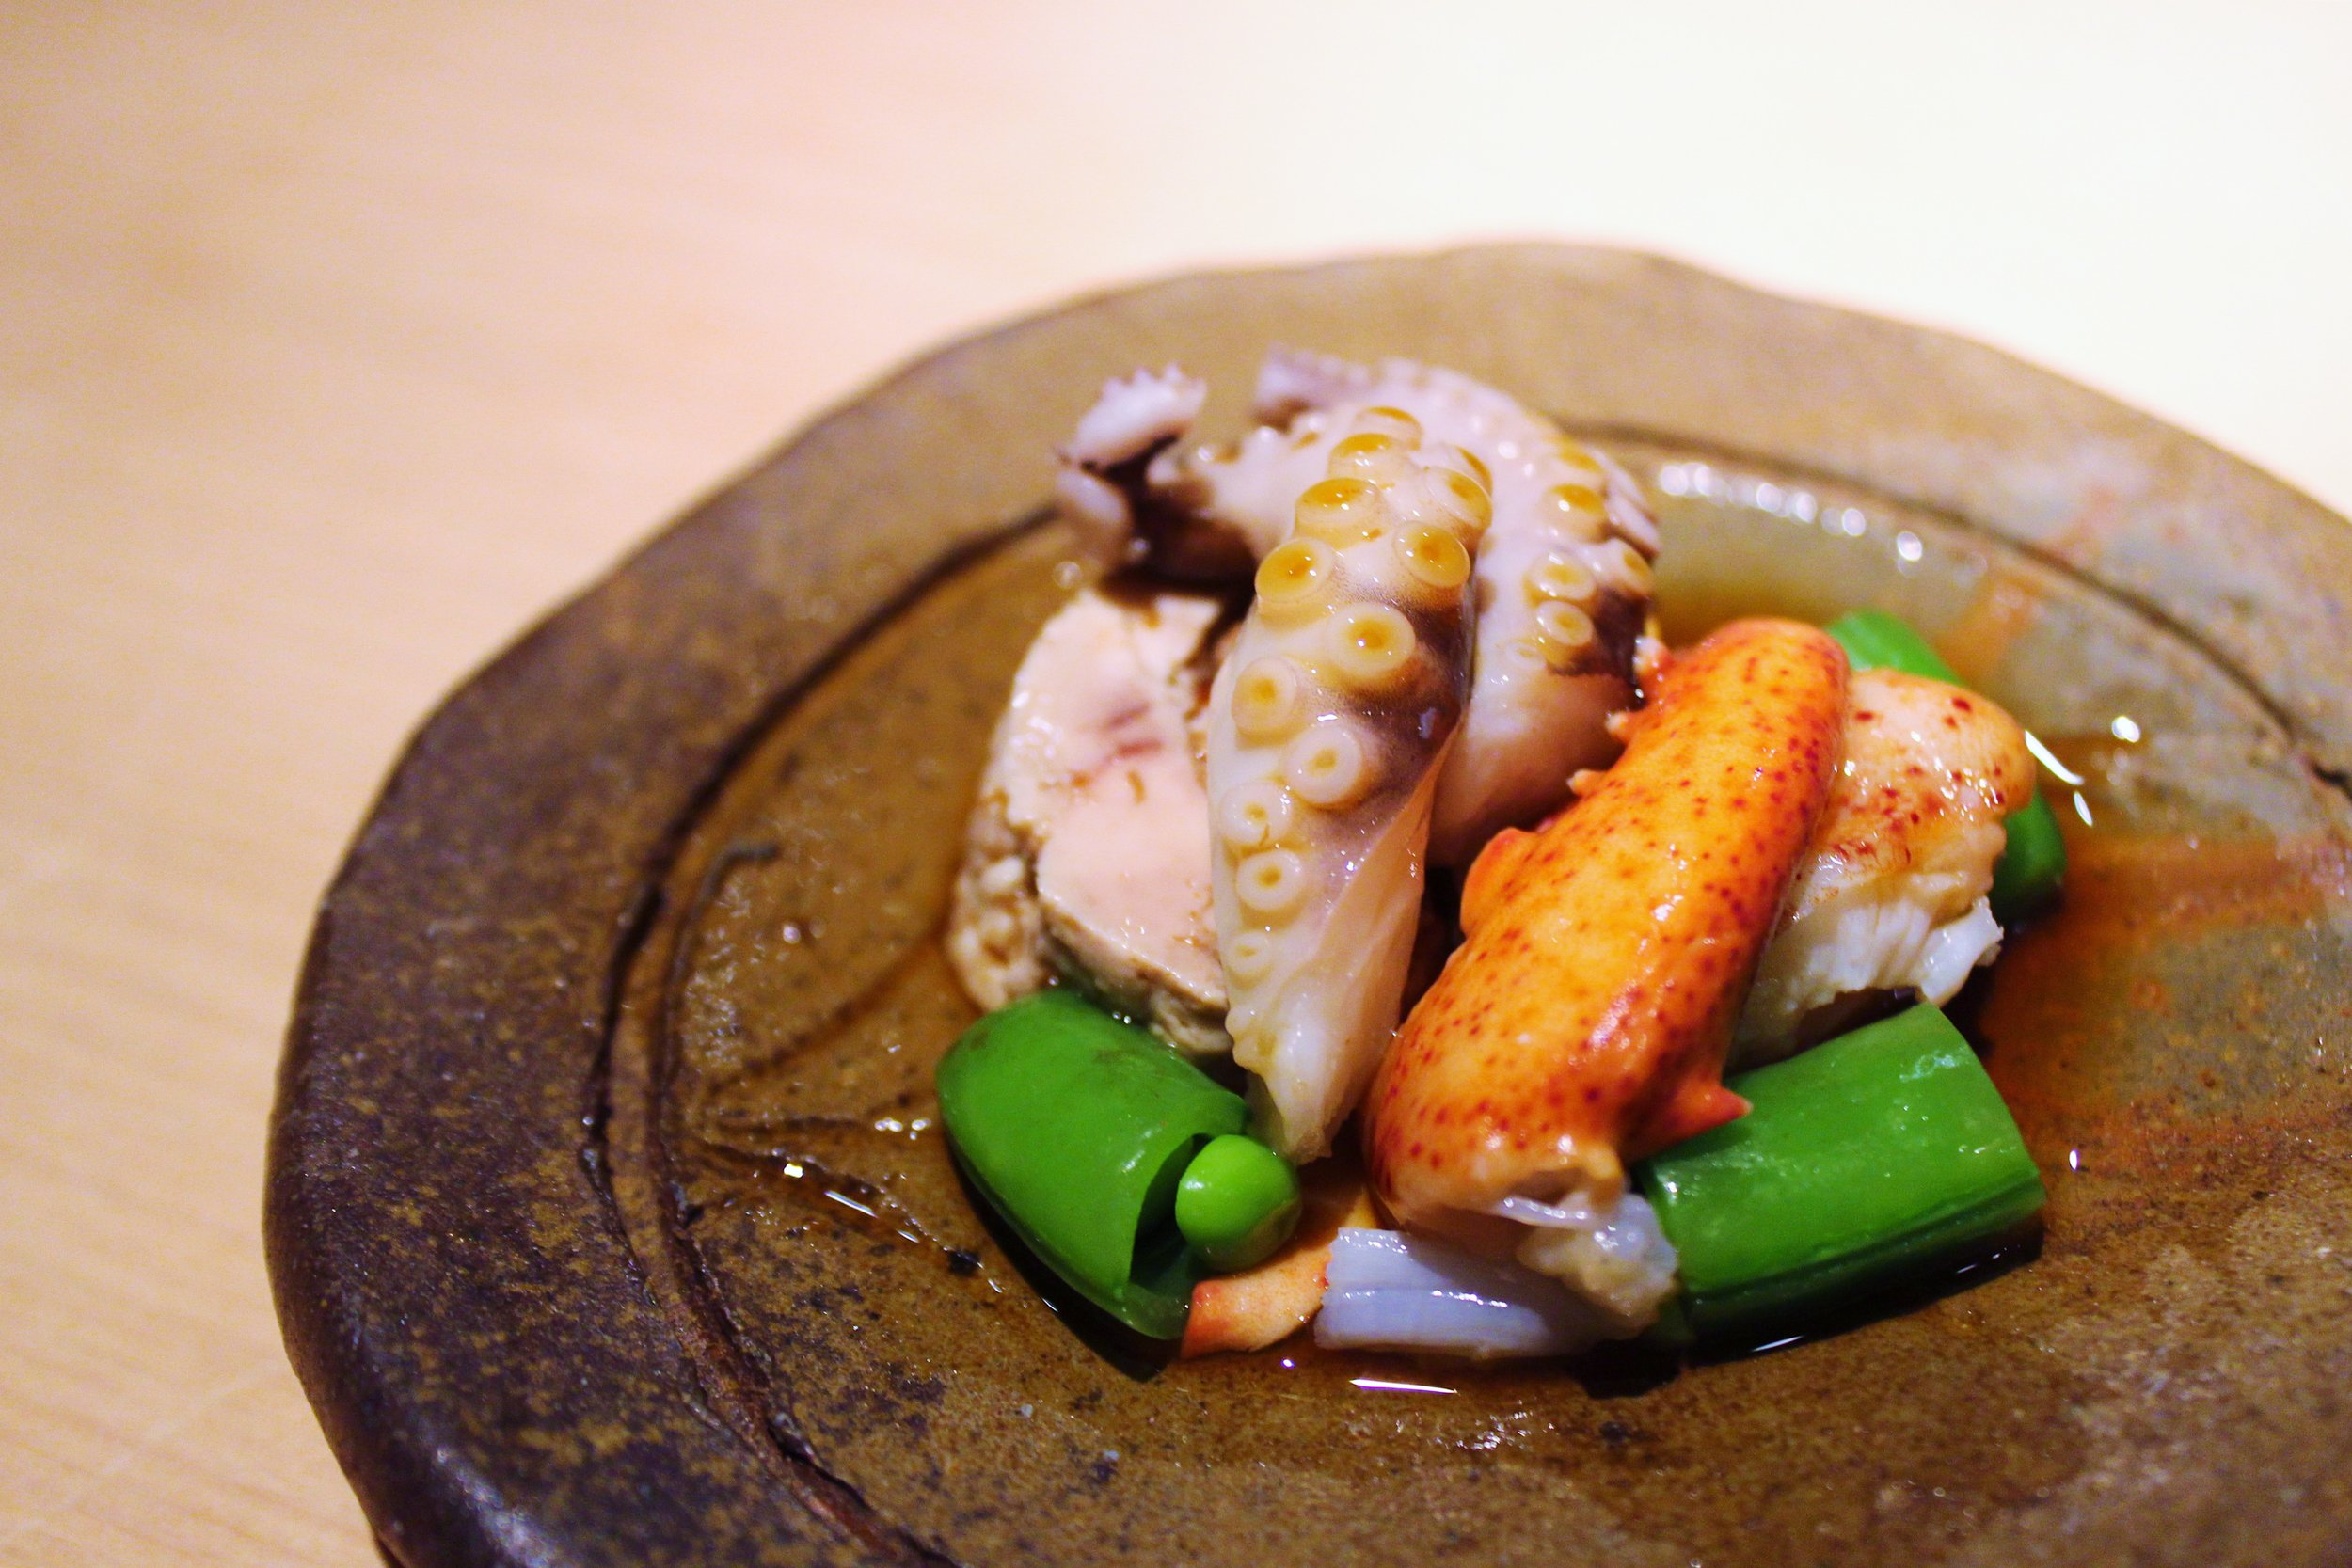 Lightly Poached Maine Lobster, Octopus from Portugal, Steamed Monk Fish Liver, Sugar Snap Peas with Citrus Soy Sauce